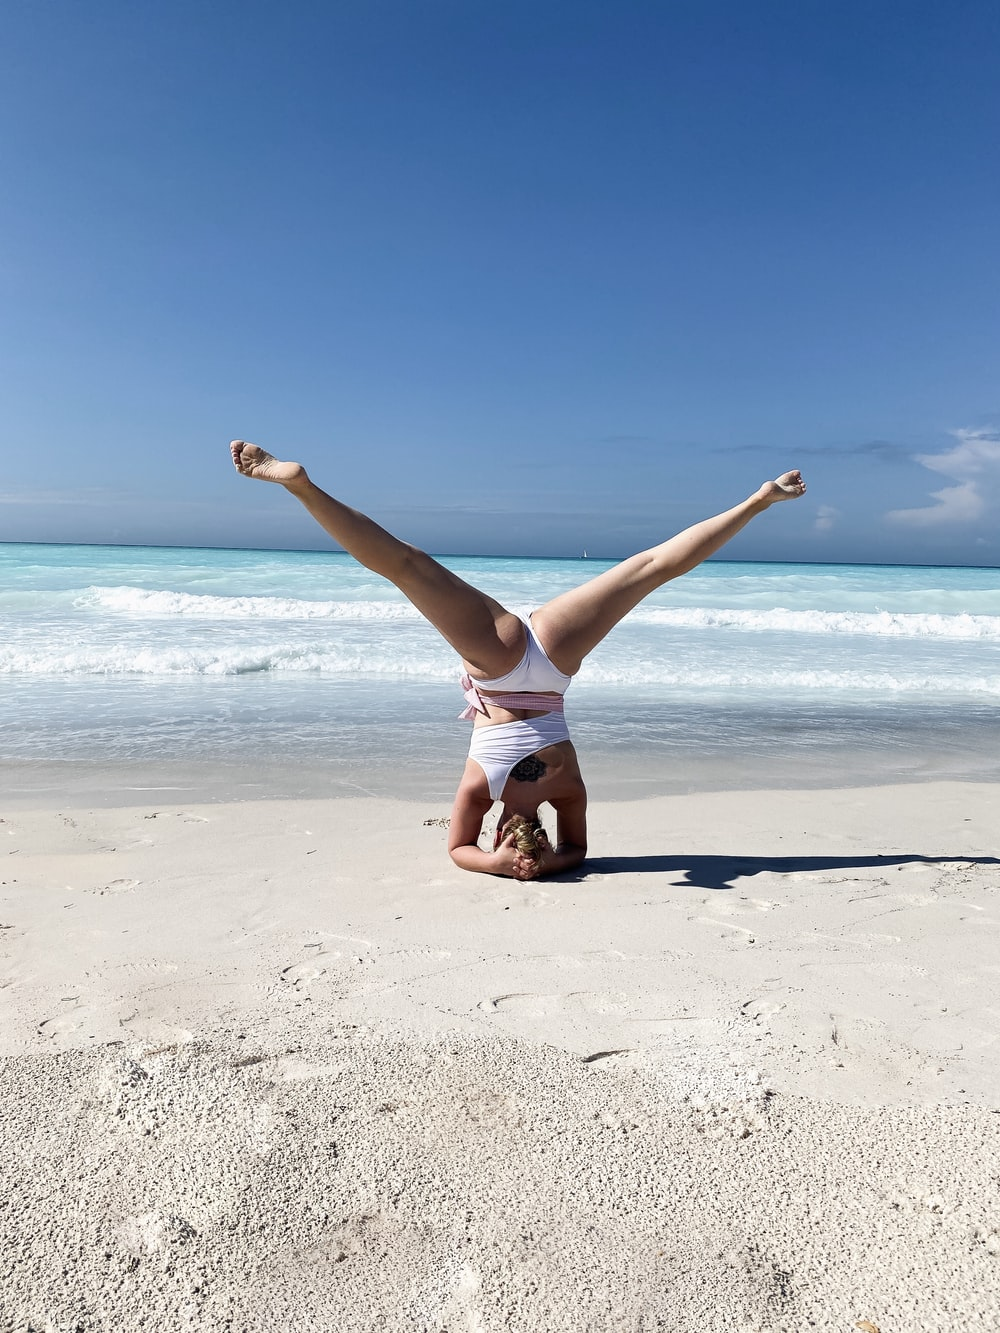 woman in white tank top and white shorts jumping on beach during daytime